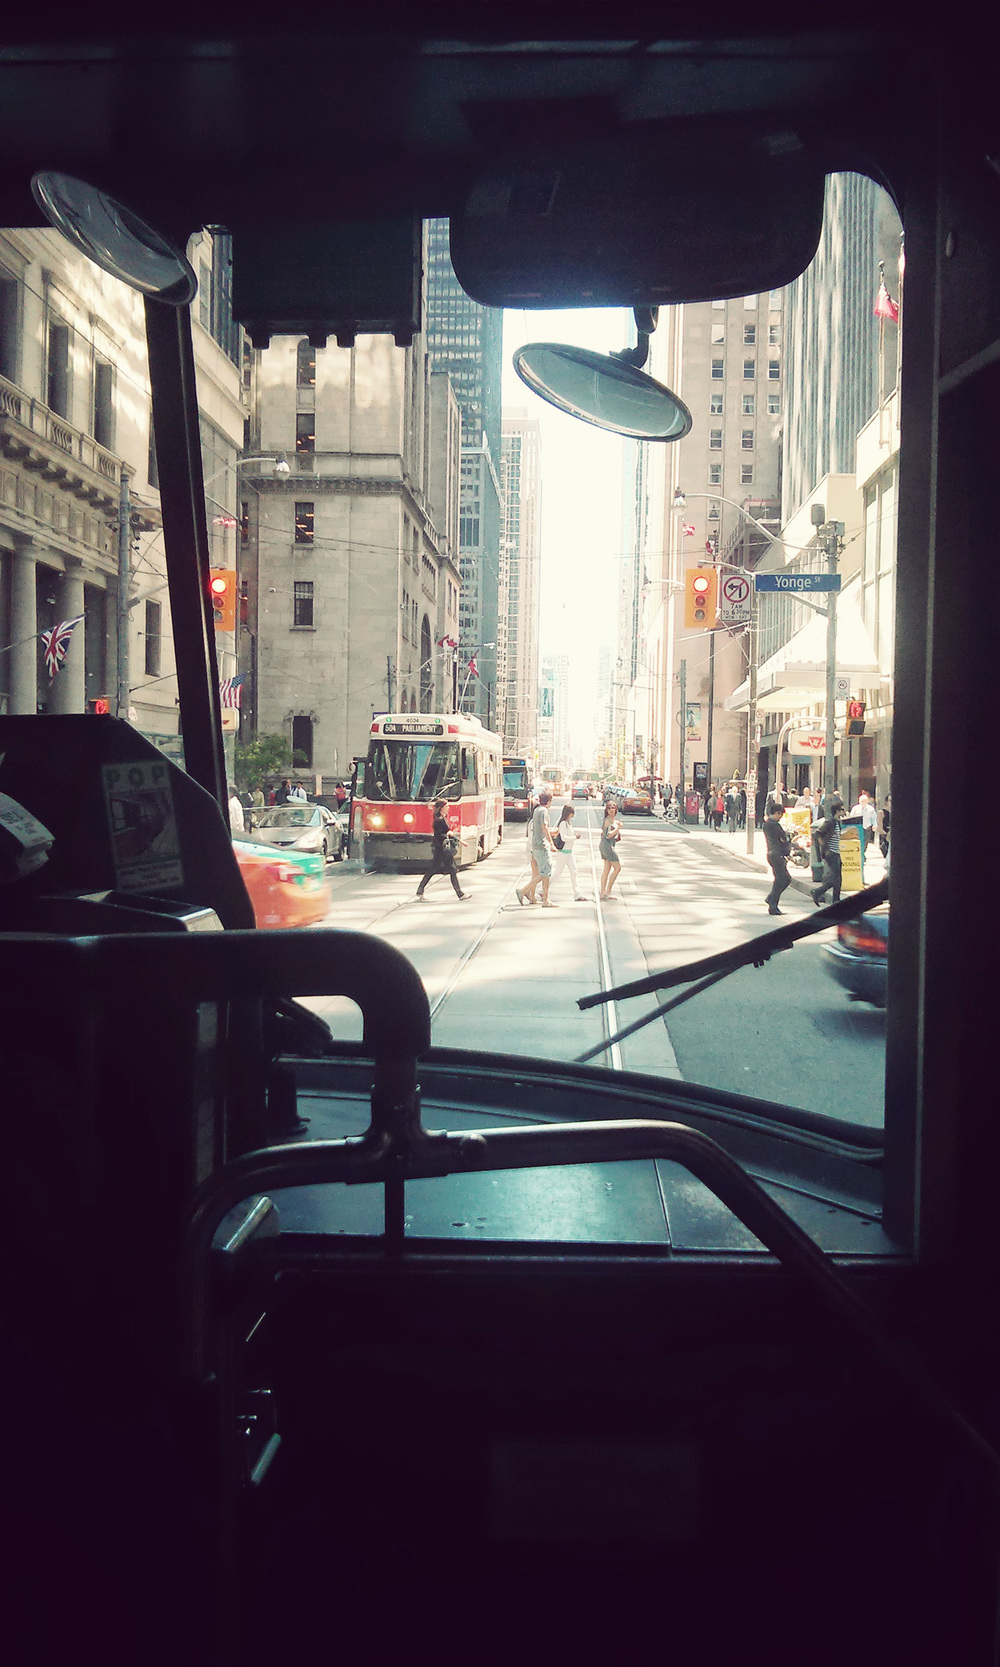 I like downtowns. I like Toronto's downtown - it's busy and active and alive and still has some nice historic high-rises. I am also a big fan of trams, in spite of the fact that they slow traffic and make bike riding treacherous.